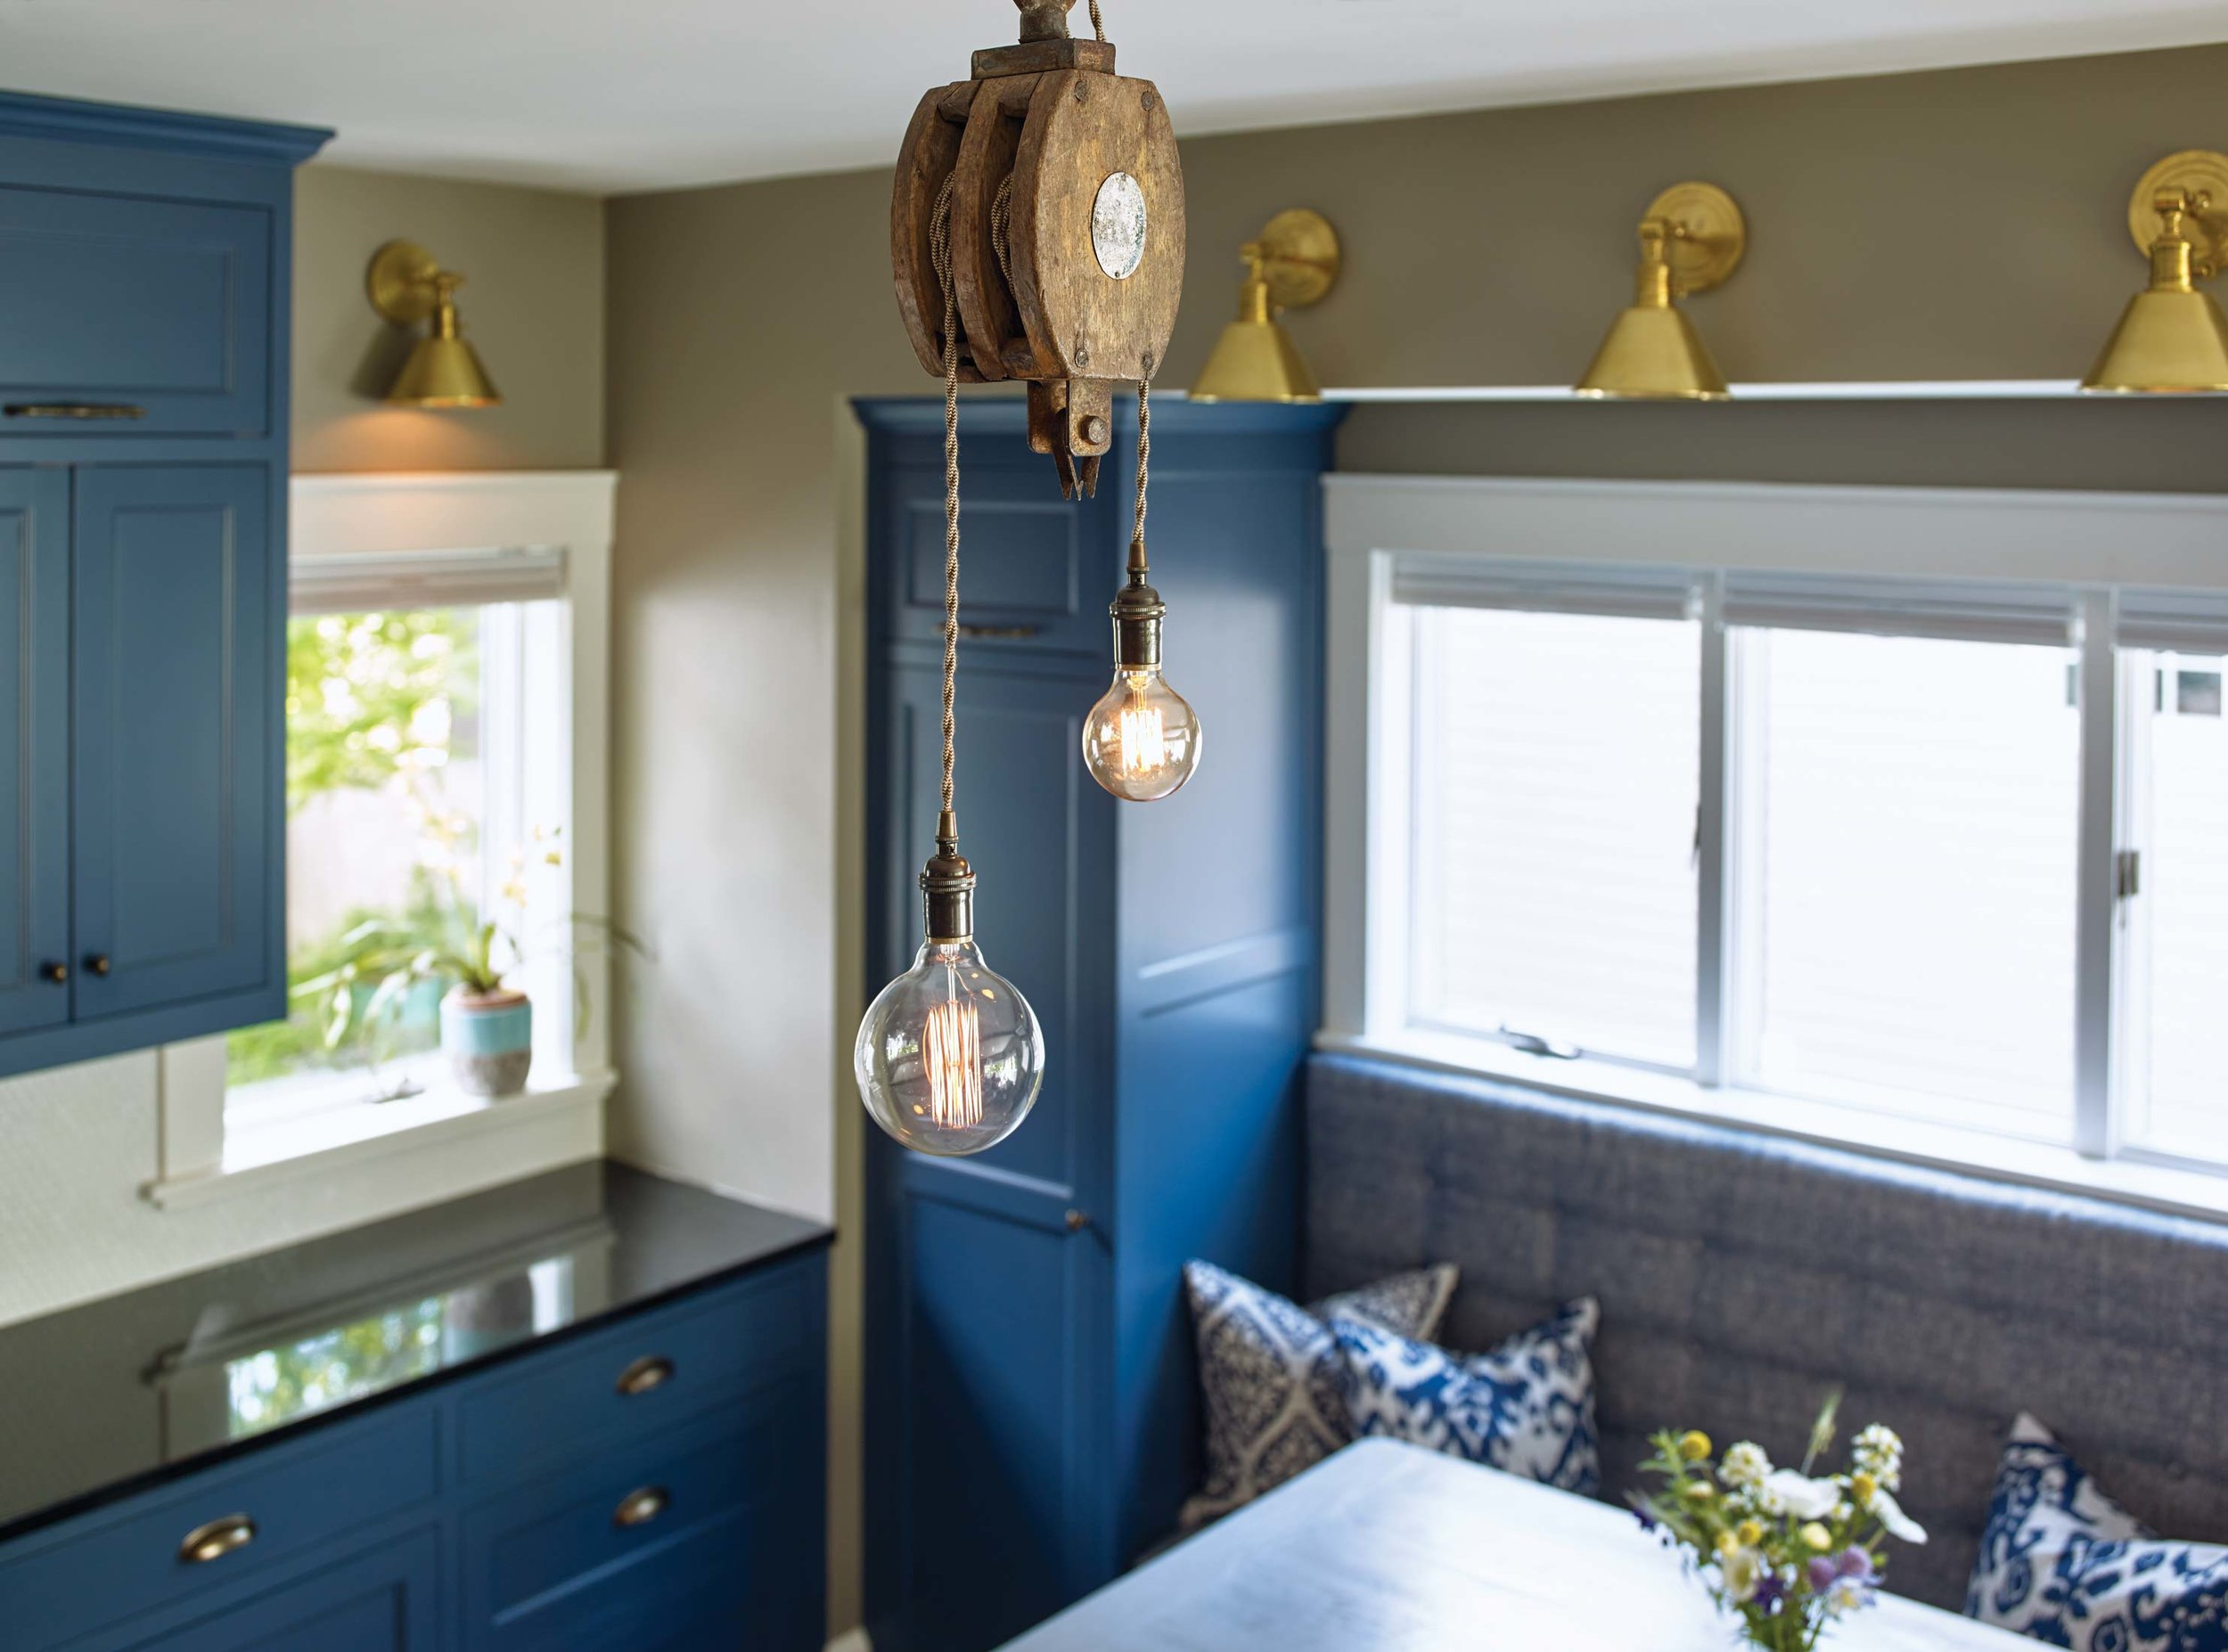 """The Chases loved Lippmann's vision for the interior—""""She has great style,"""" says Tracy—and eagerly incorporated their own touches. The pulleys over the kitchen islands come from a trip they took to San Francisco."""